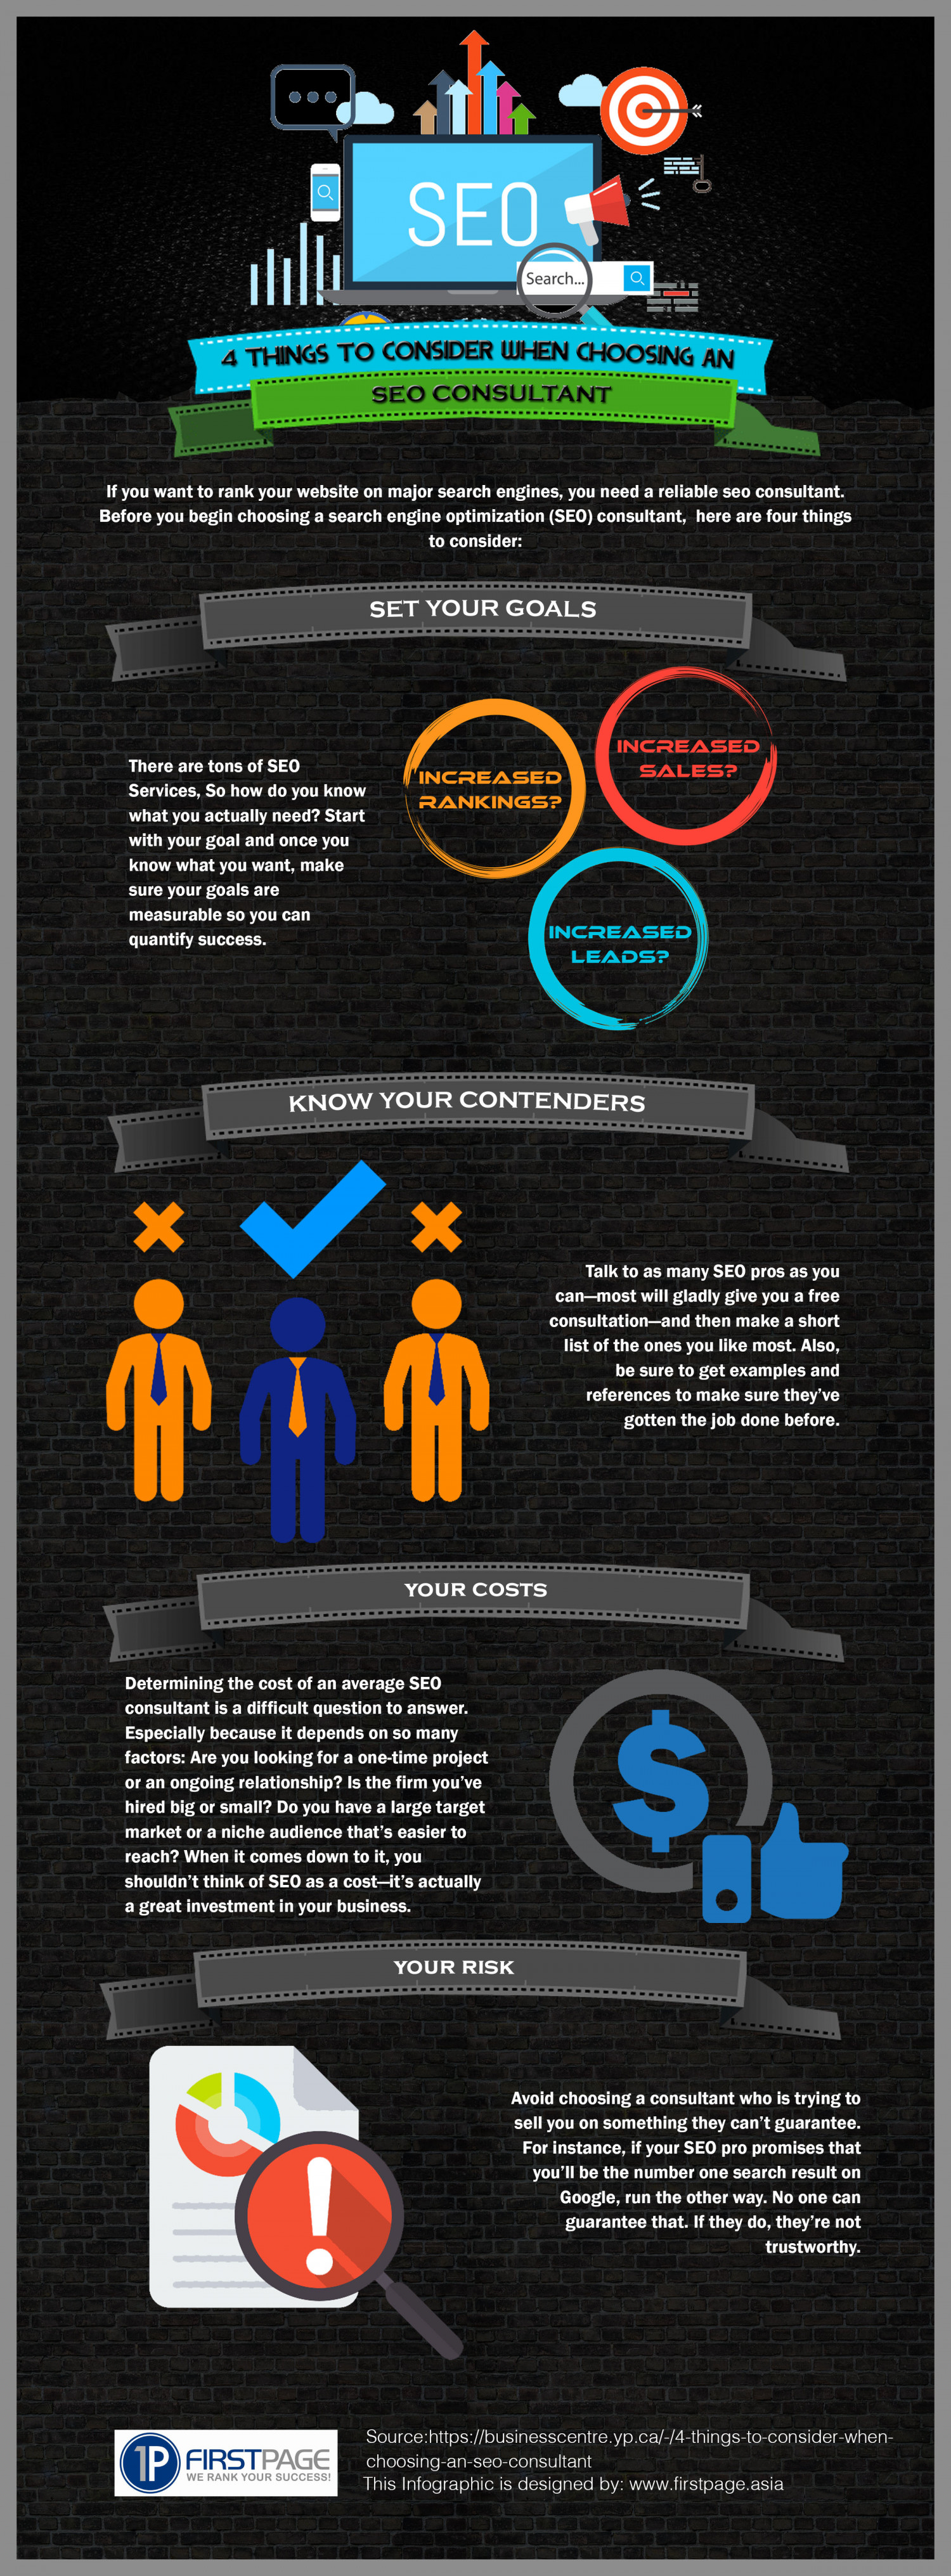 4 Things to Consider When Choosing an SEO Consultant - Infographic Infographic